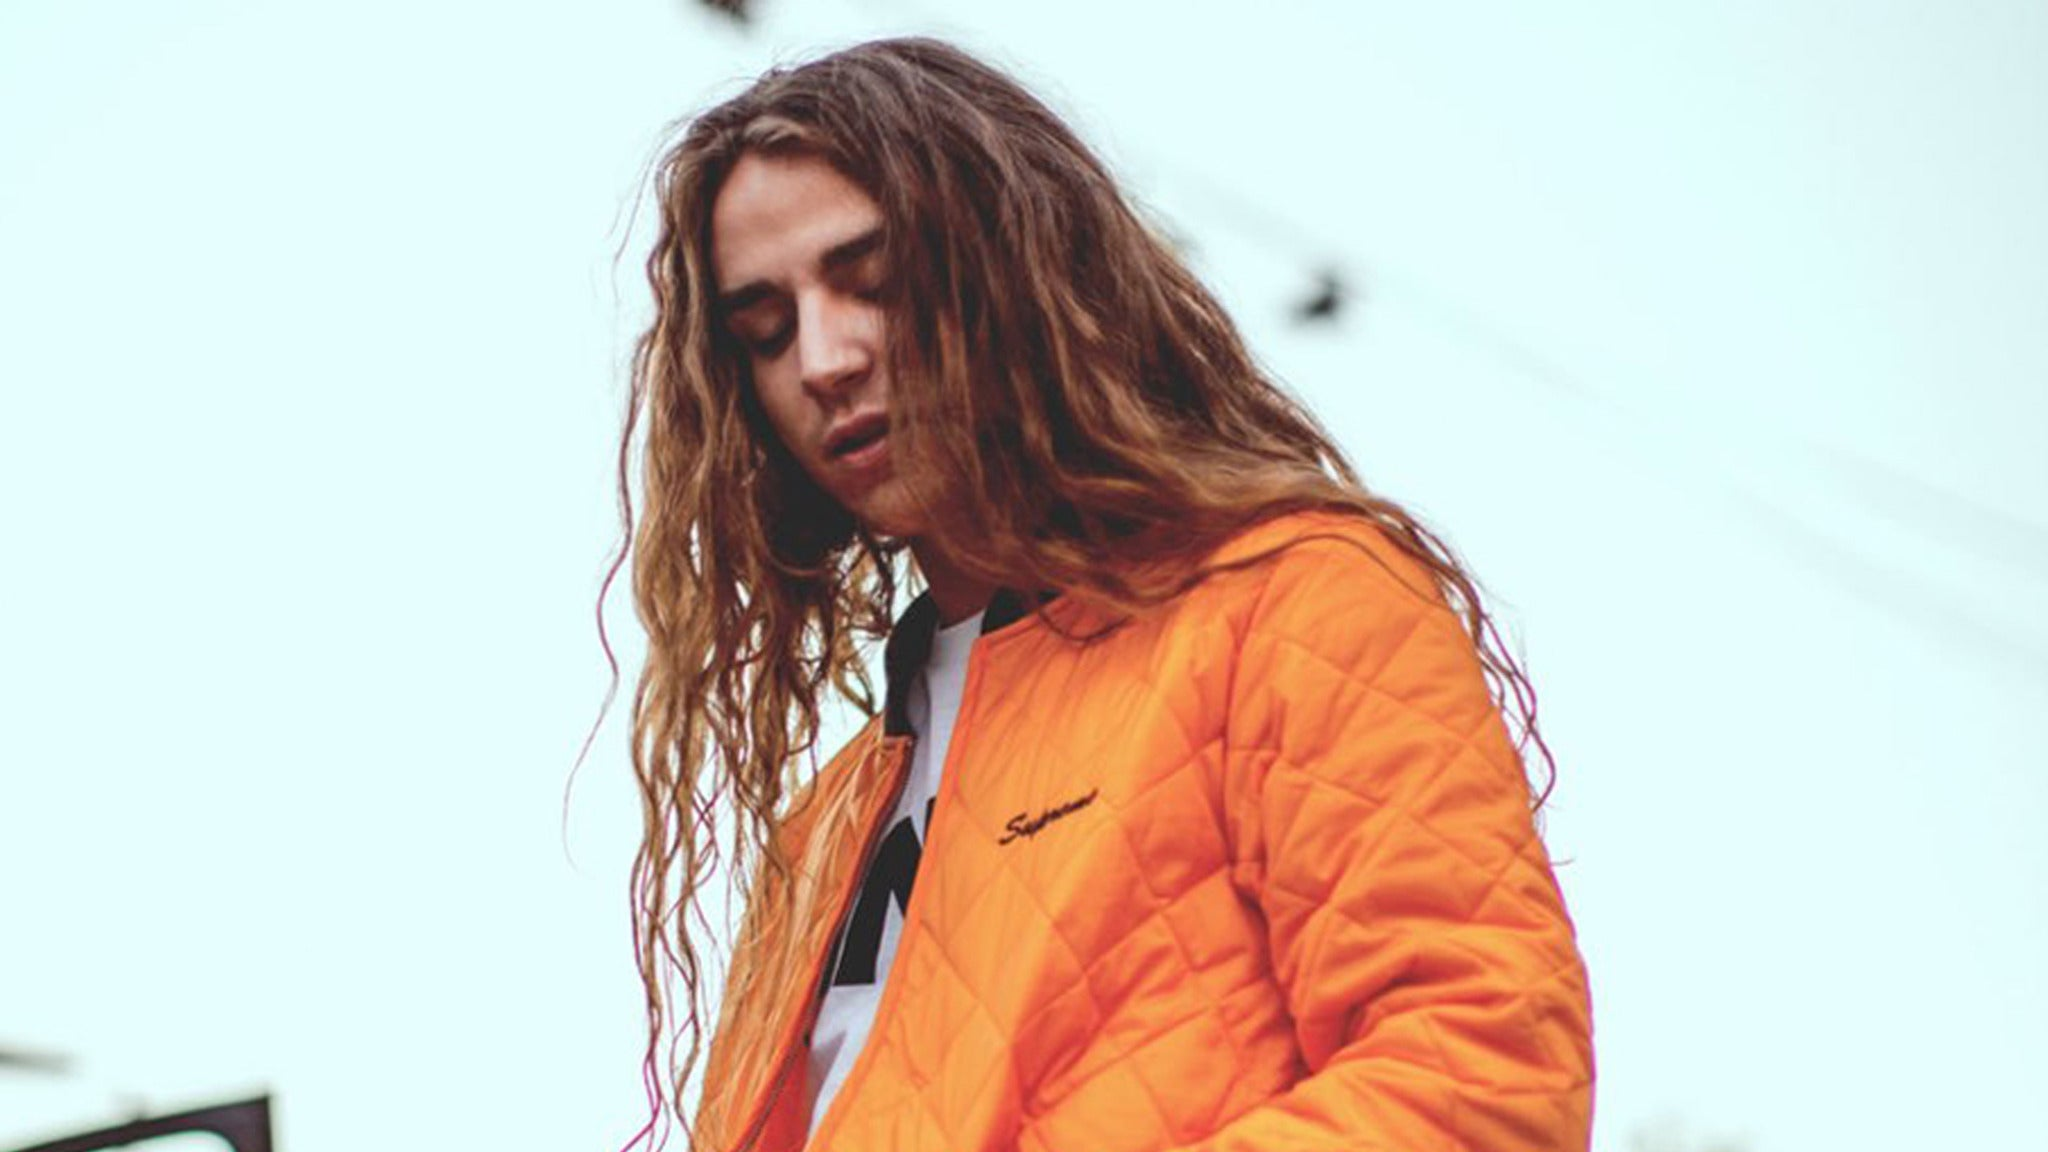 Yung Pinch ($5 Show!) at The Observatory